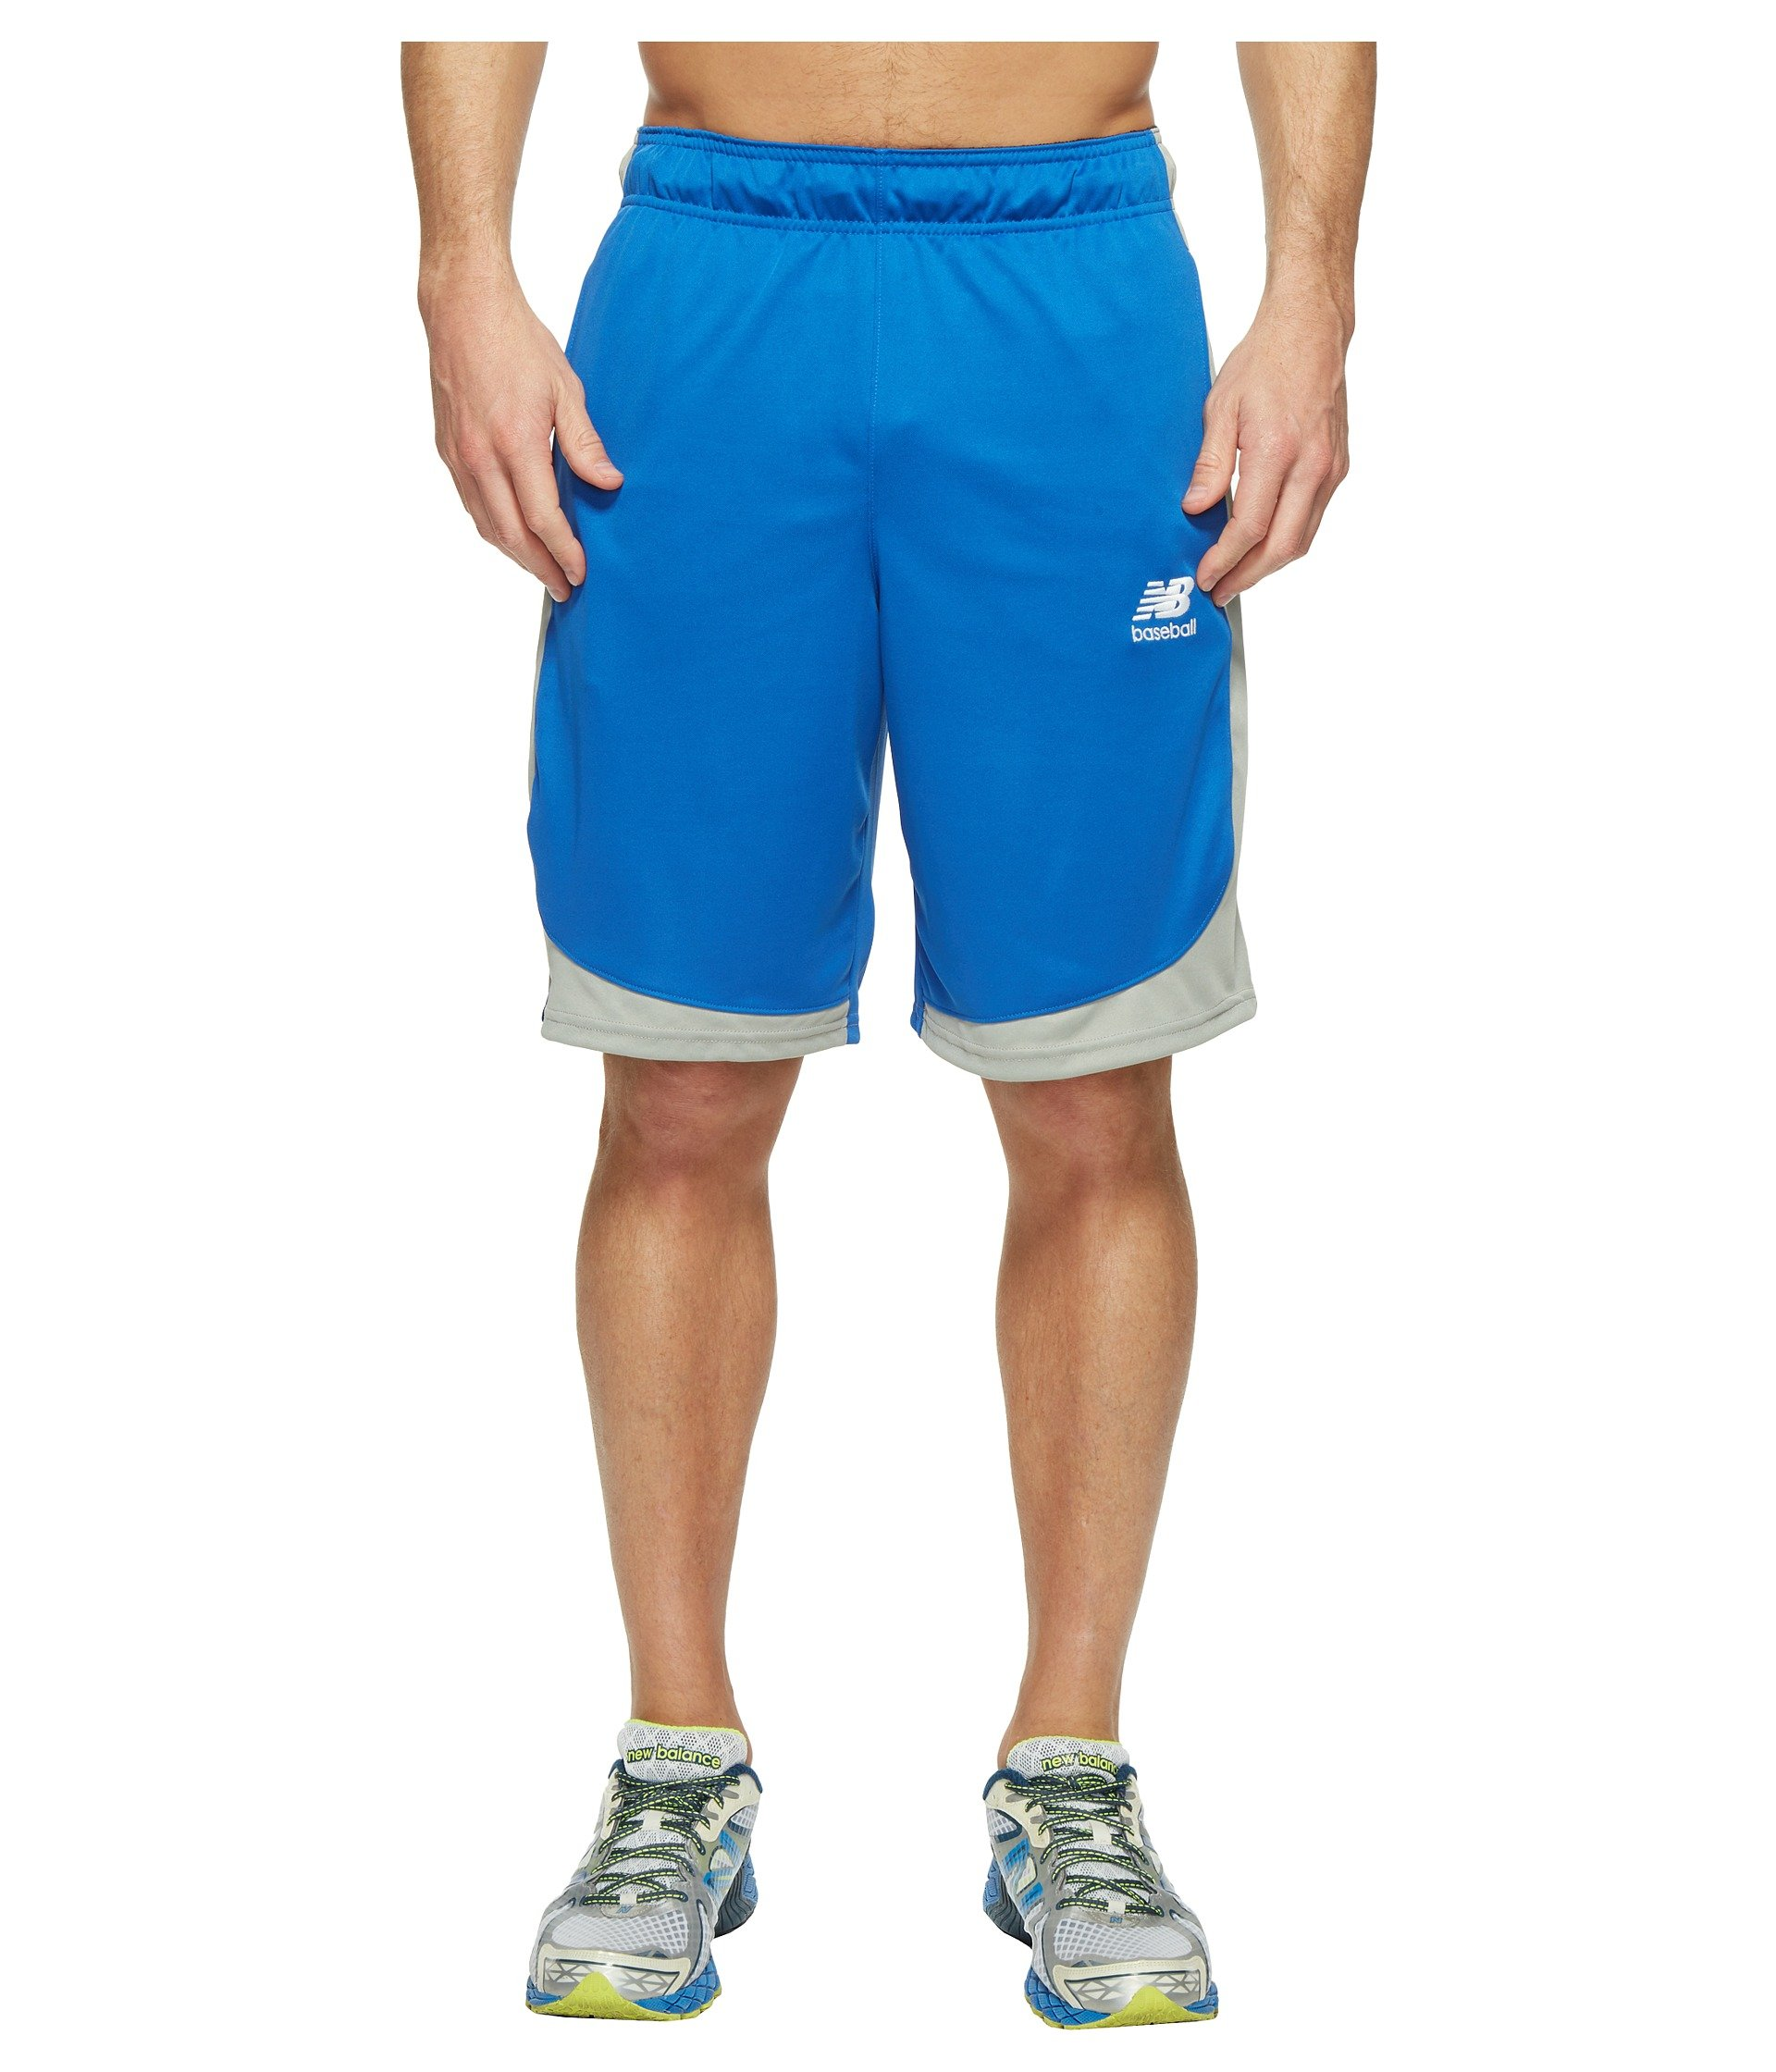 New Balance Men's Baseball Training Shorts, Royal, Small by New Balance